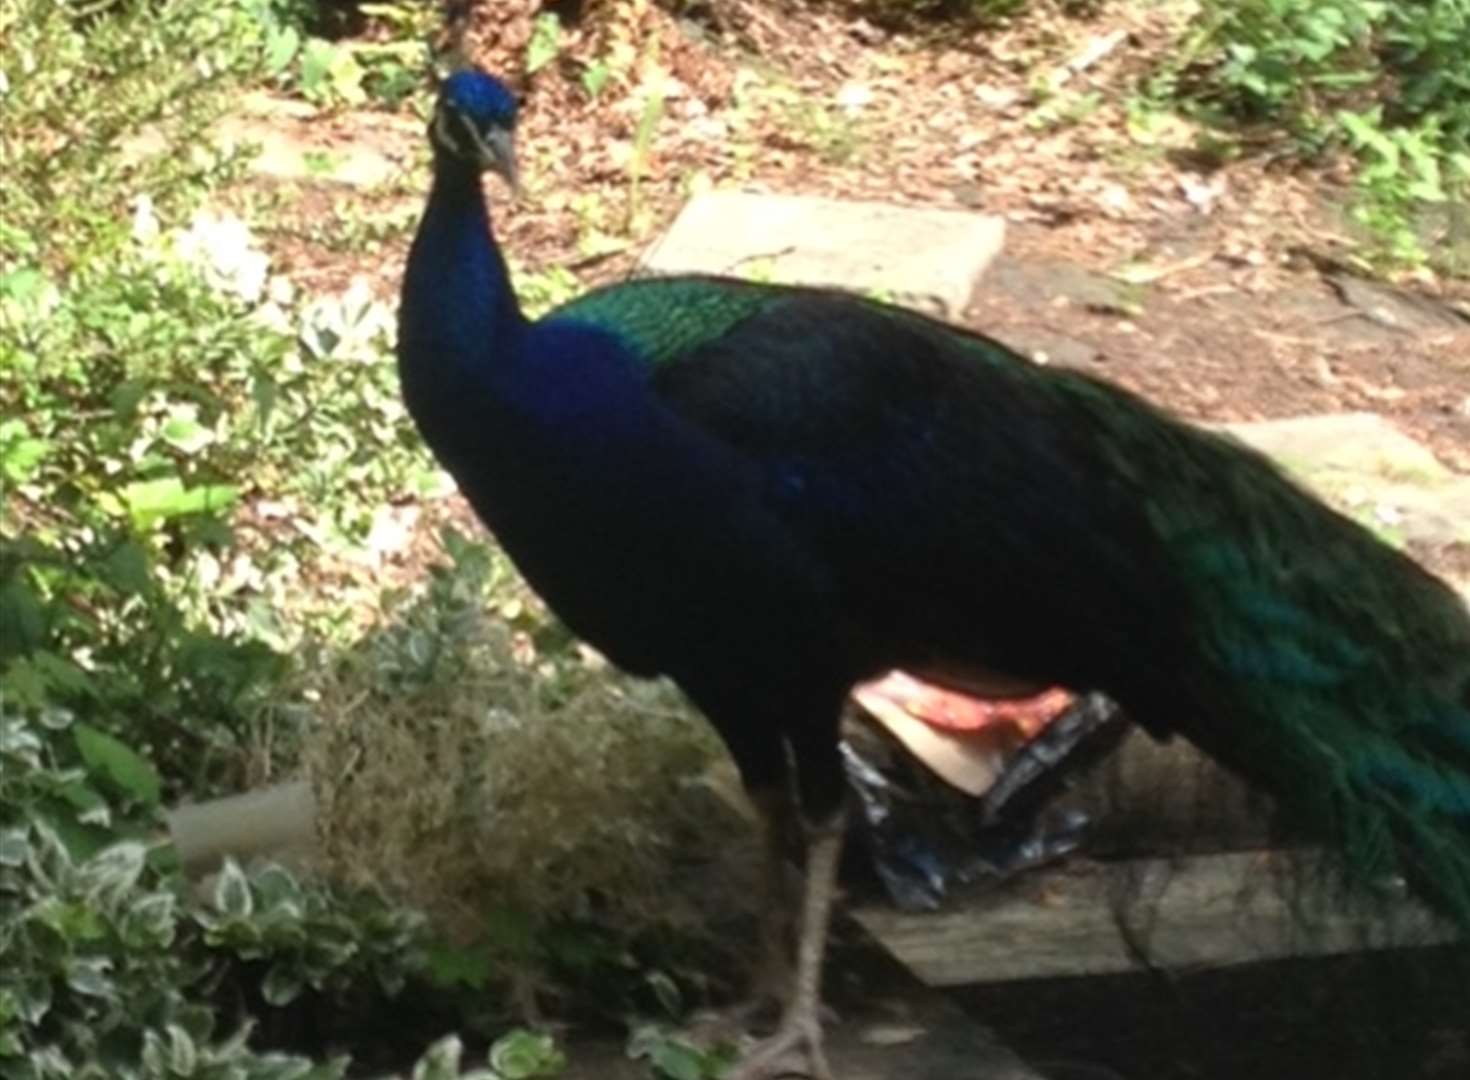 Anyone missing a peacock?